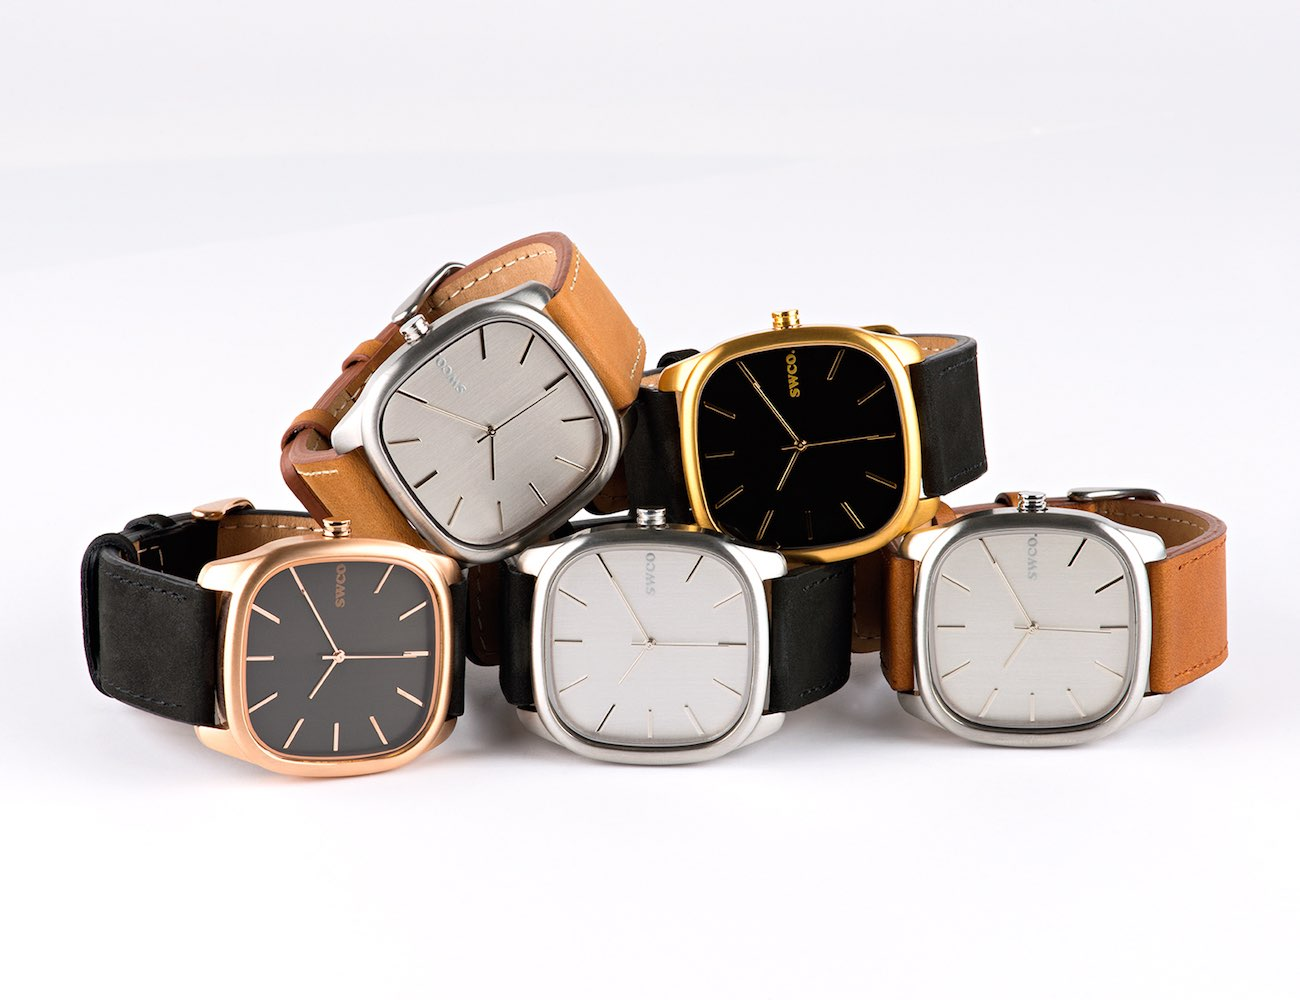 Sasqwatch+Co.+ICON+%26%238211%3B+Durable+And+Affordable+Watches